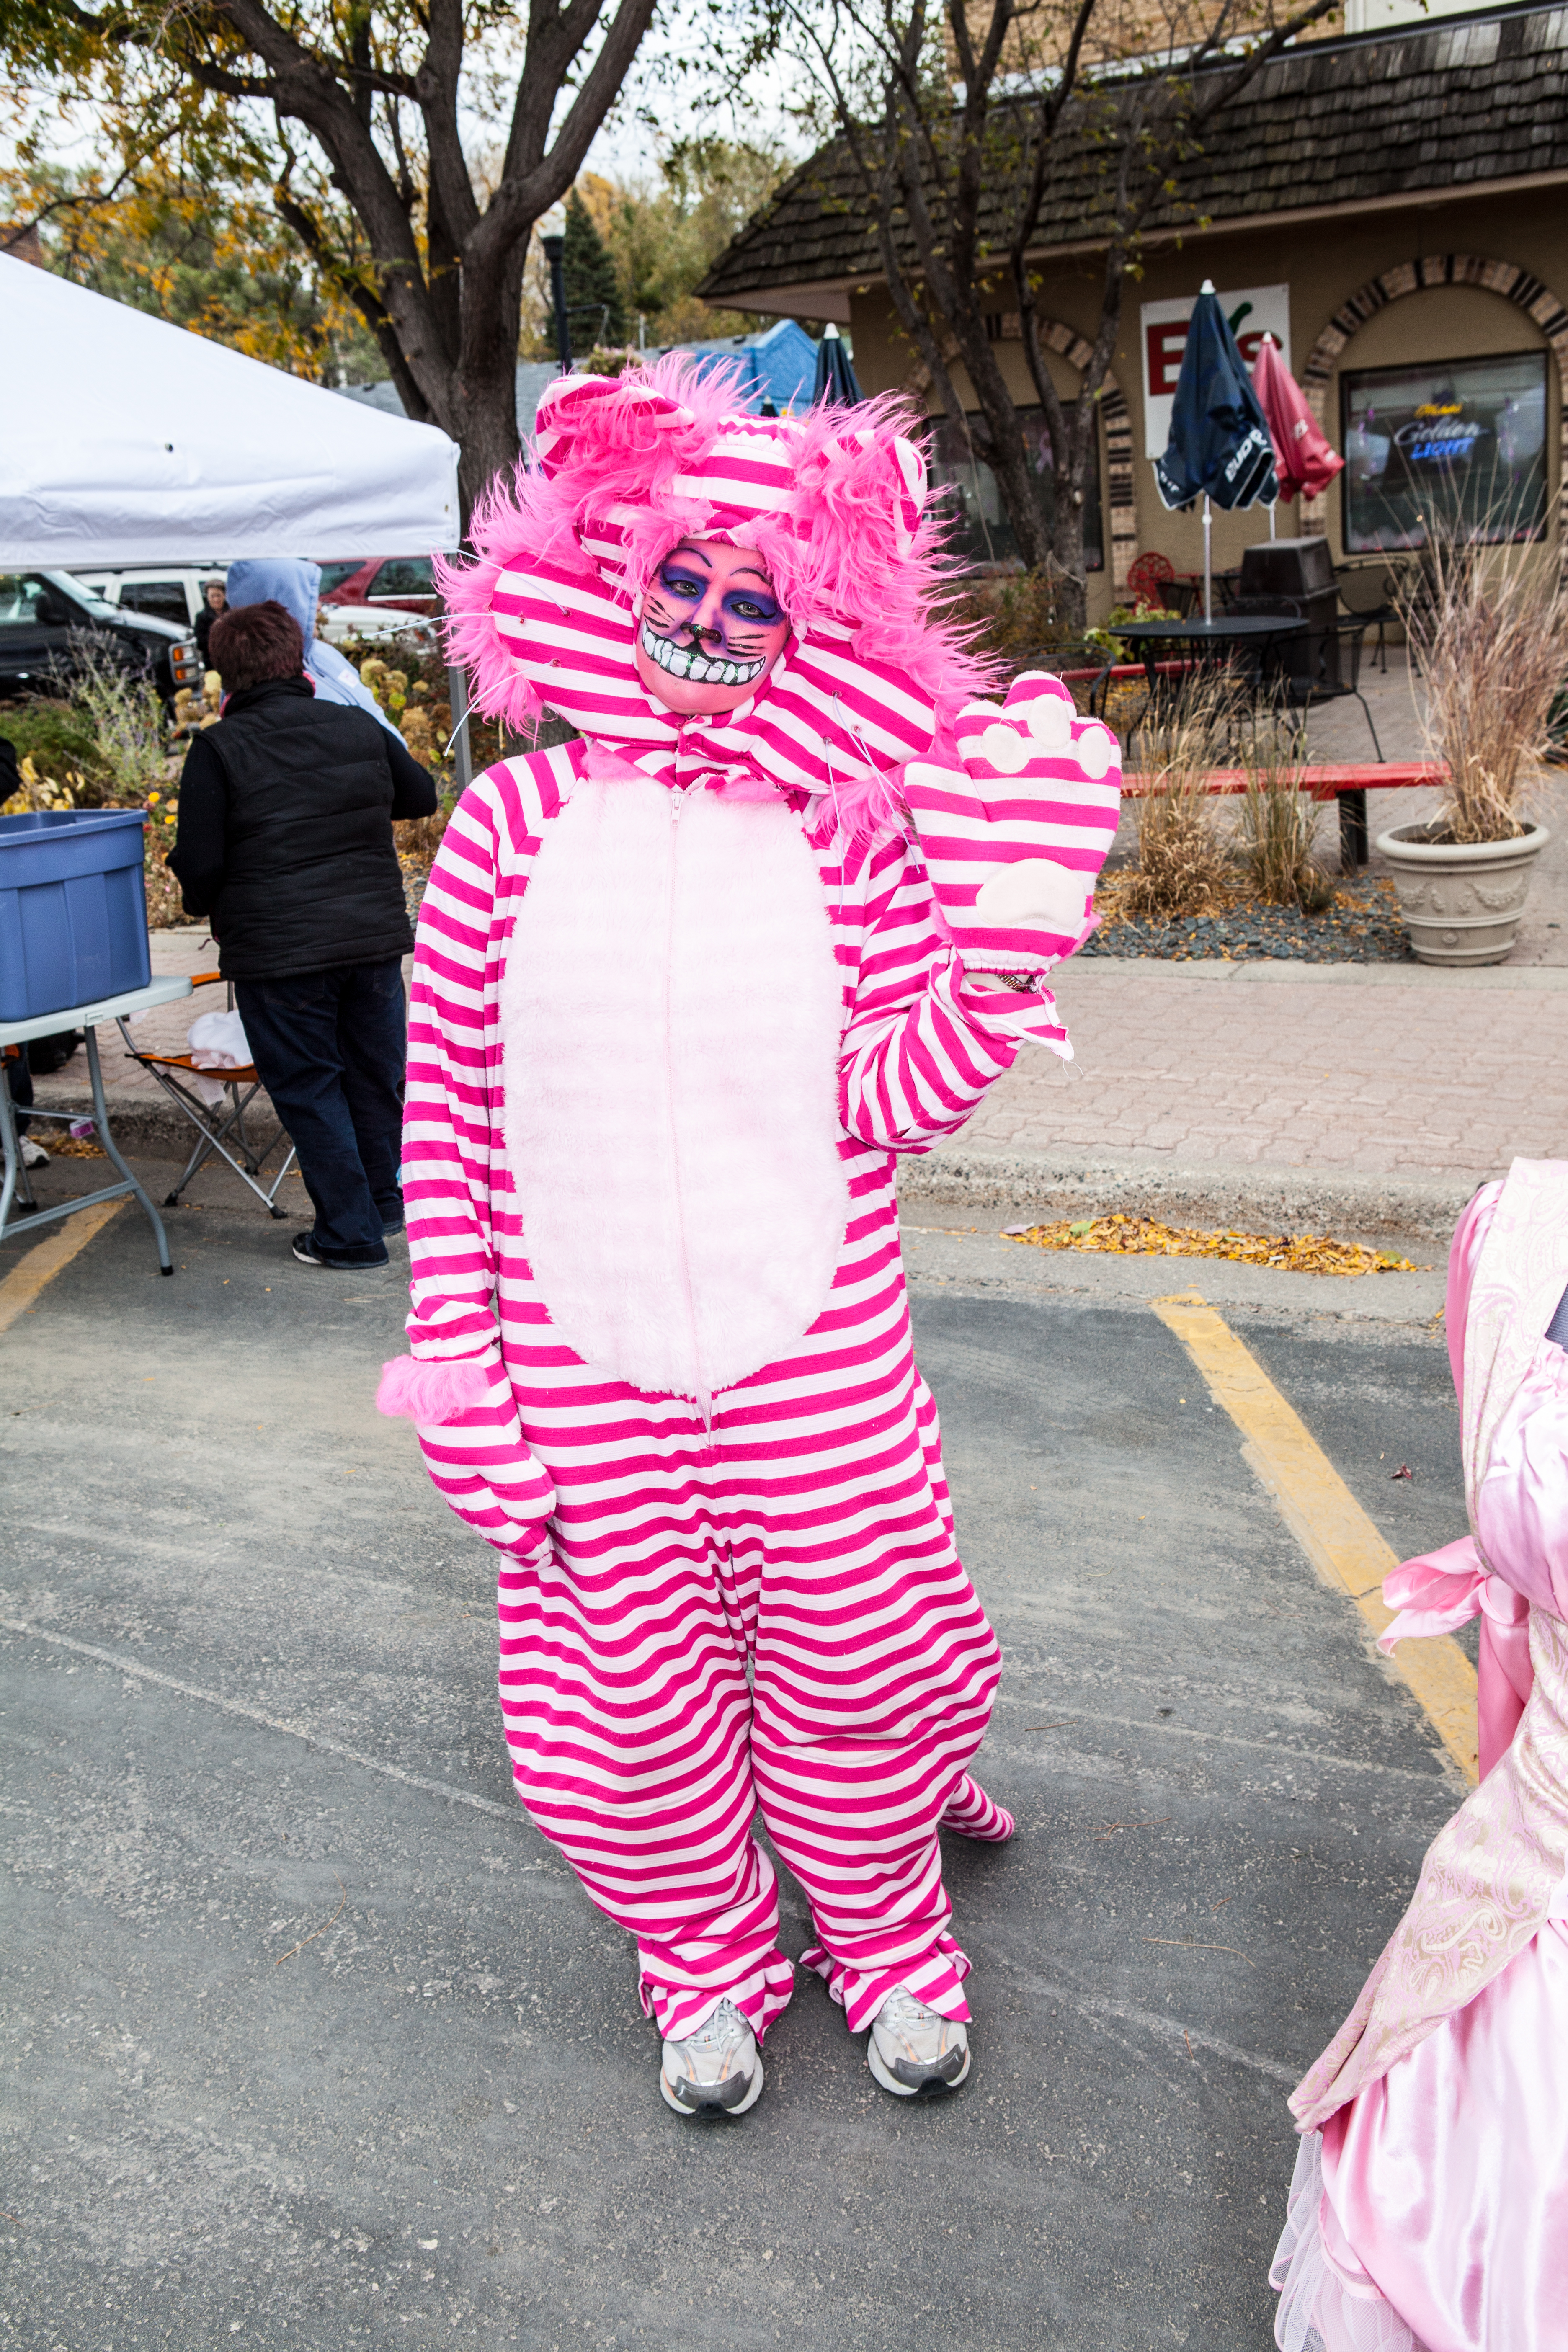 buffalo pink street party image #-65